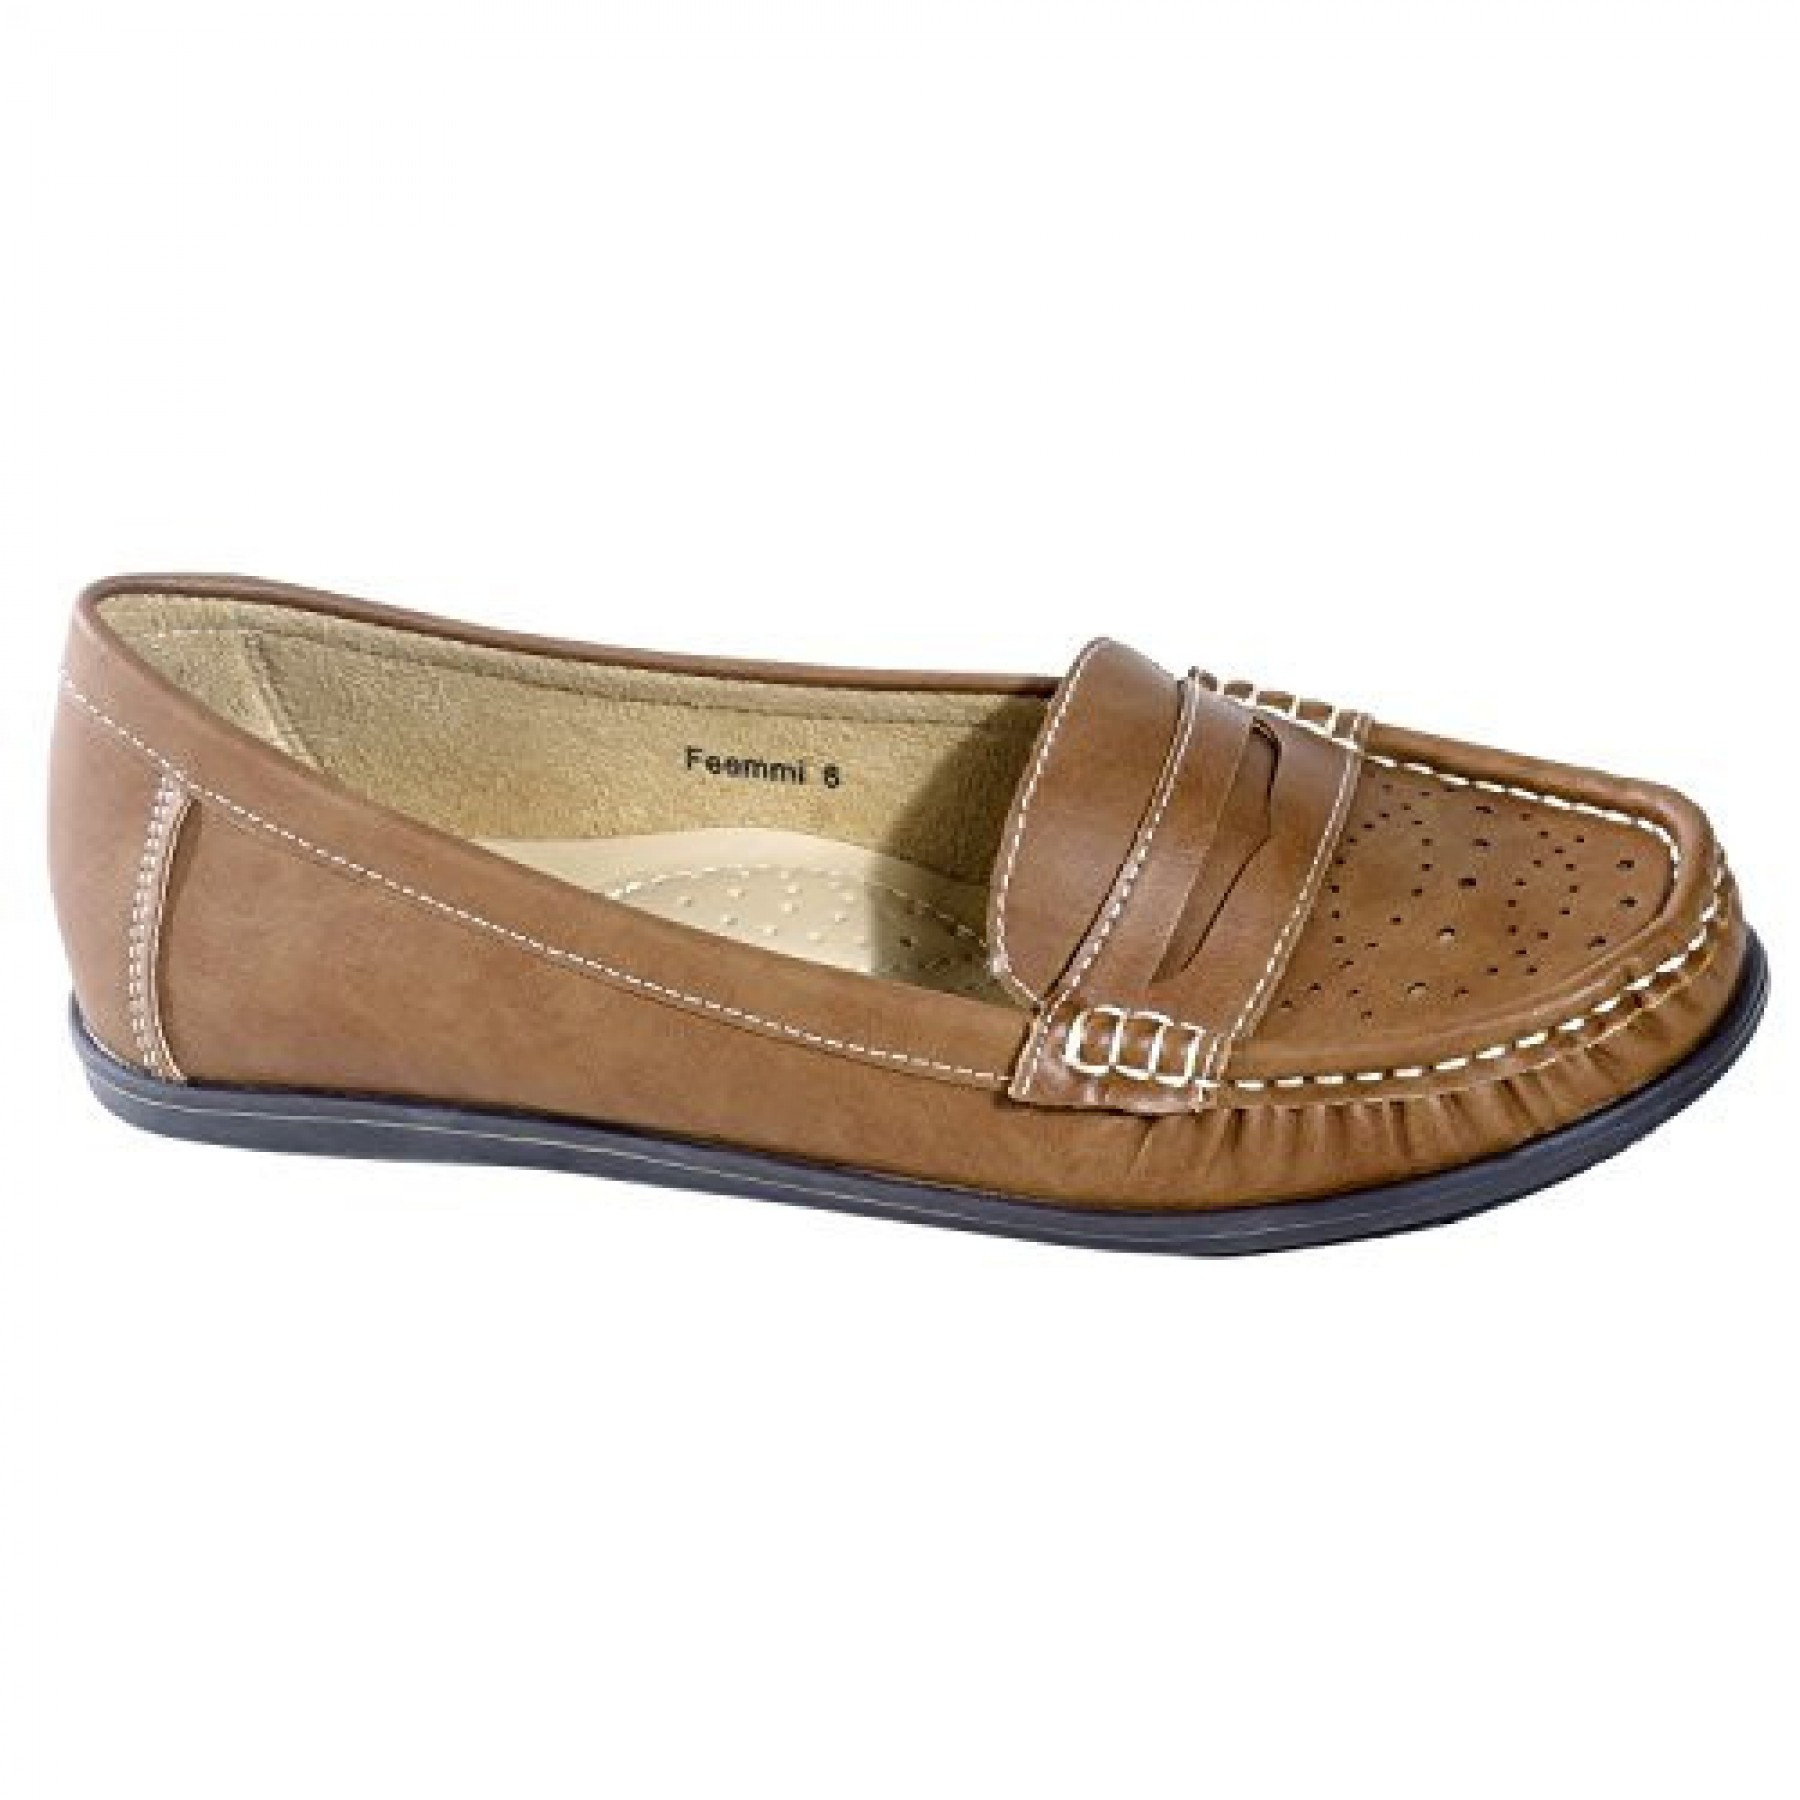 Women's Cognac Manmade Feemmi Loafer Style Flat with Contrast Stitching